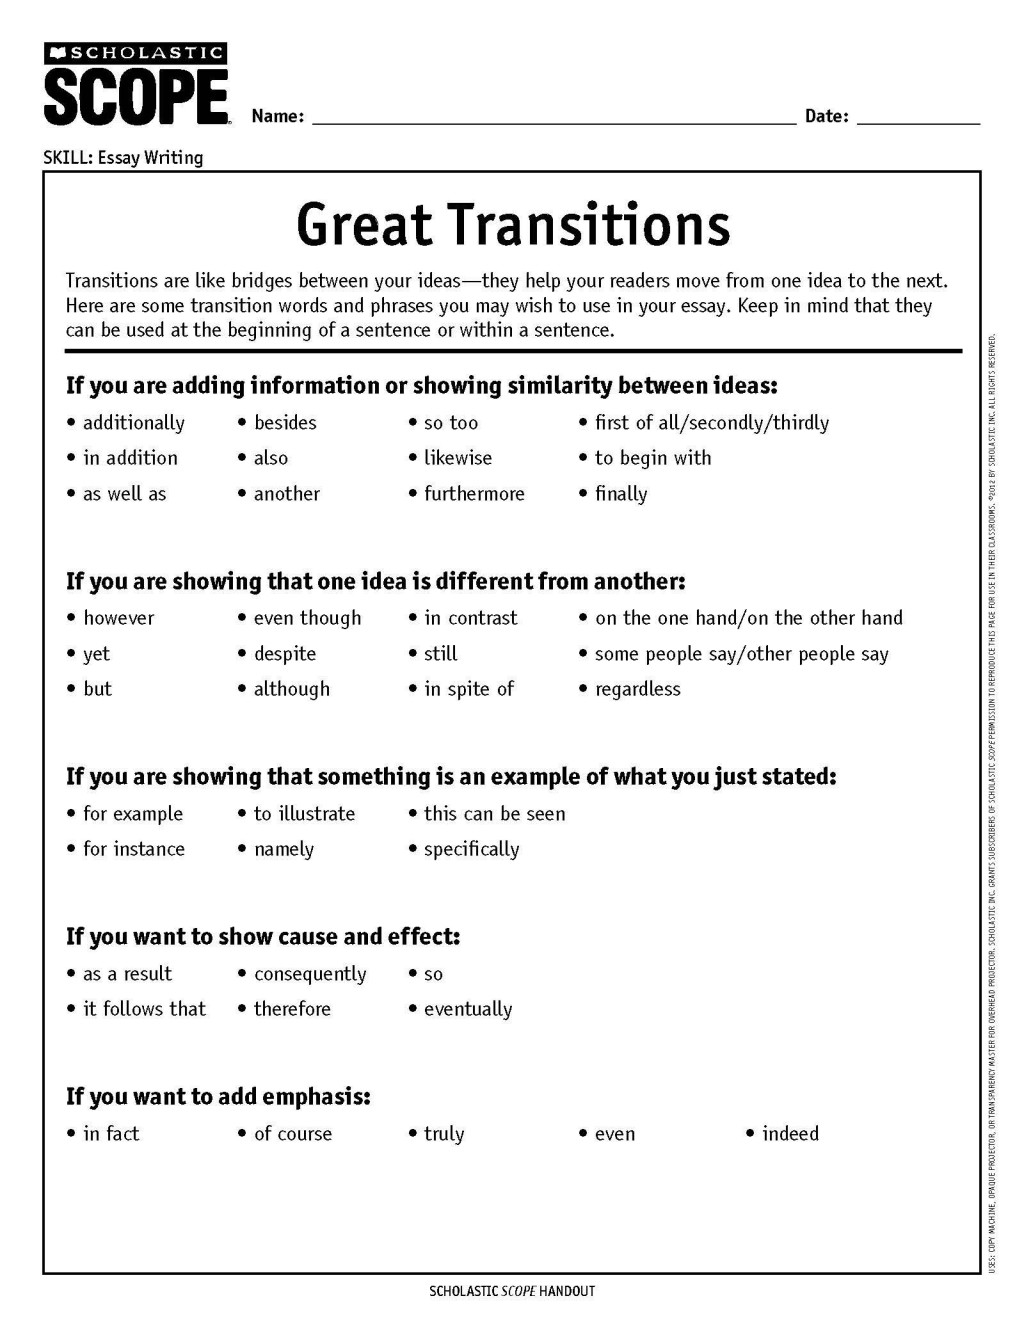 019 Essay Example Transitions How To Choose The Perfect Transition Word Or Phrase Writing Words For An List Of Transitional Essays Pdf Archaicawful Persuasive Phrases Conclusion Between Paragraphs Large